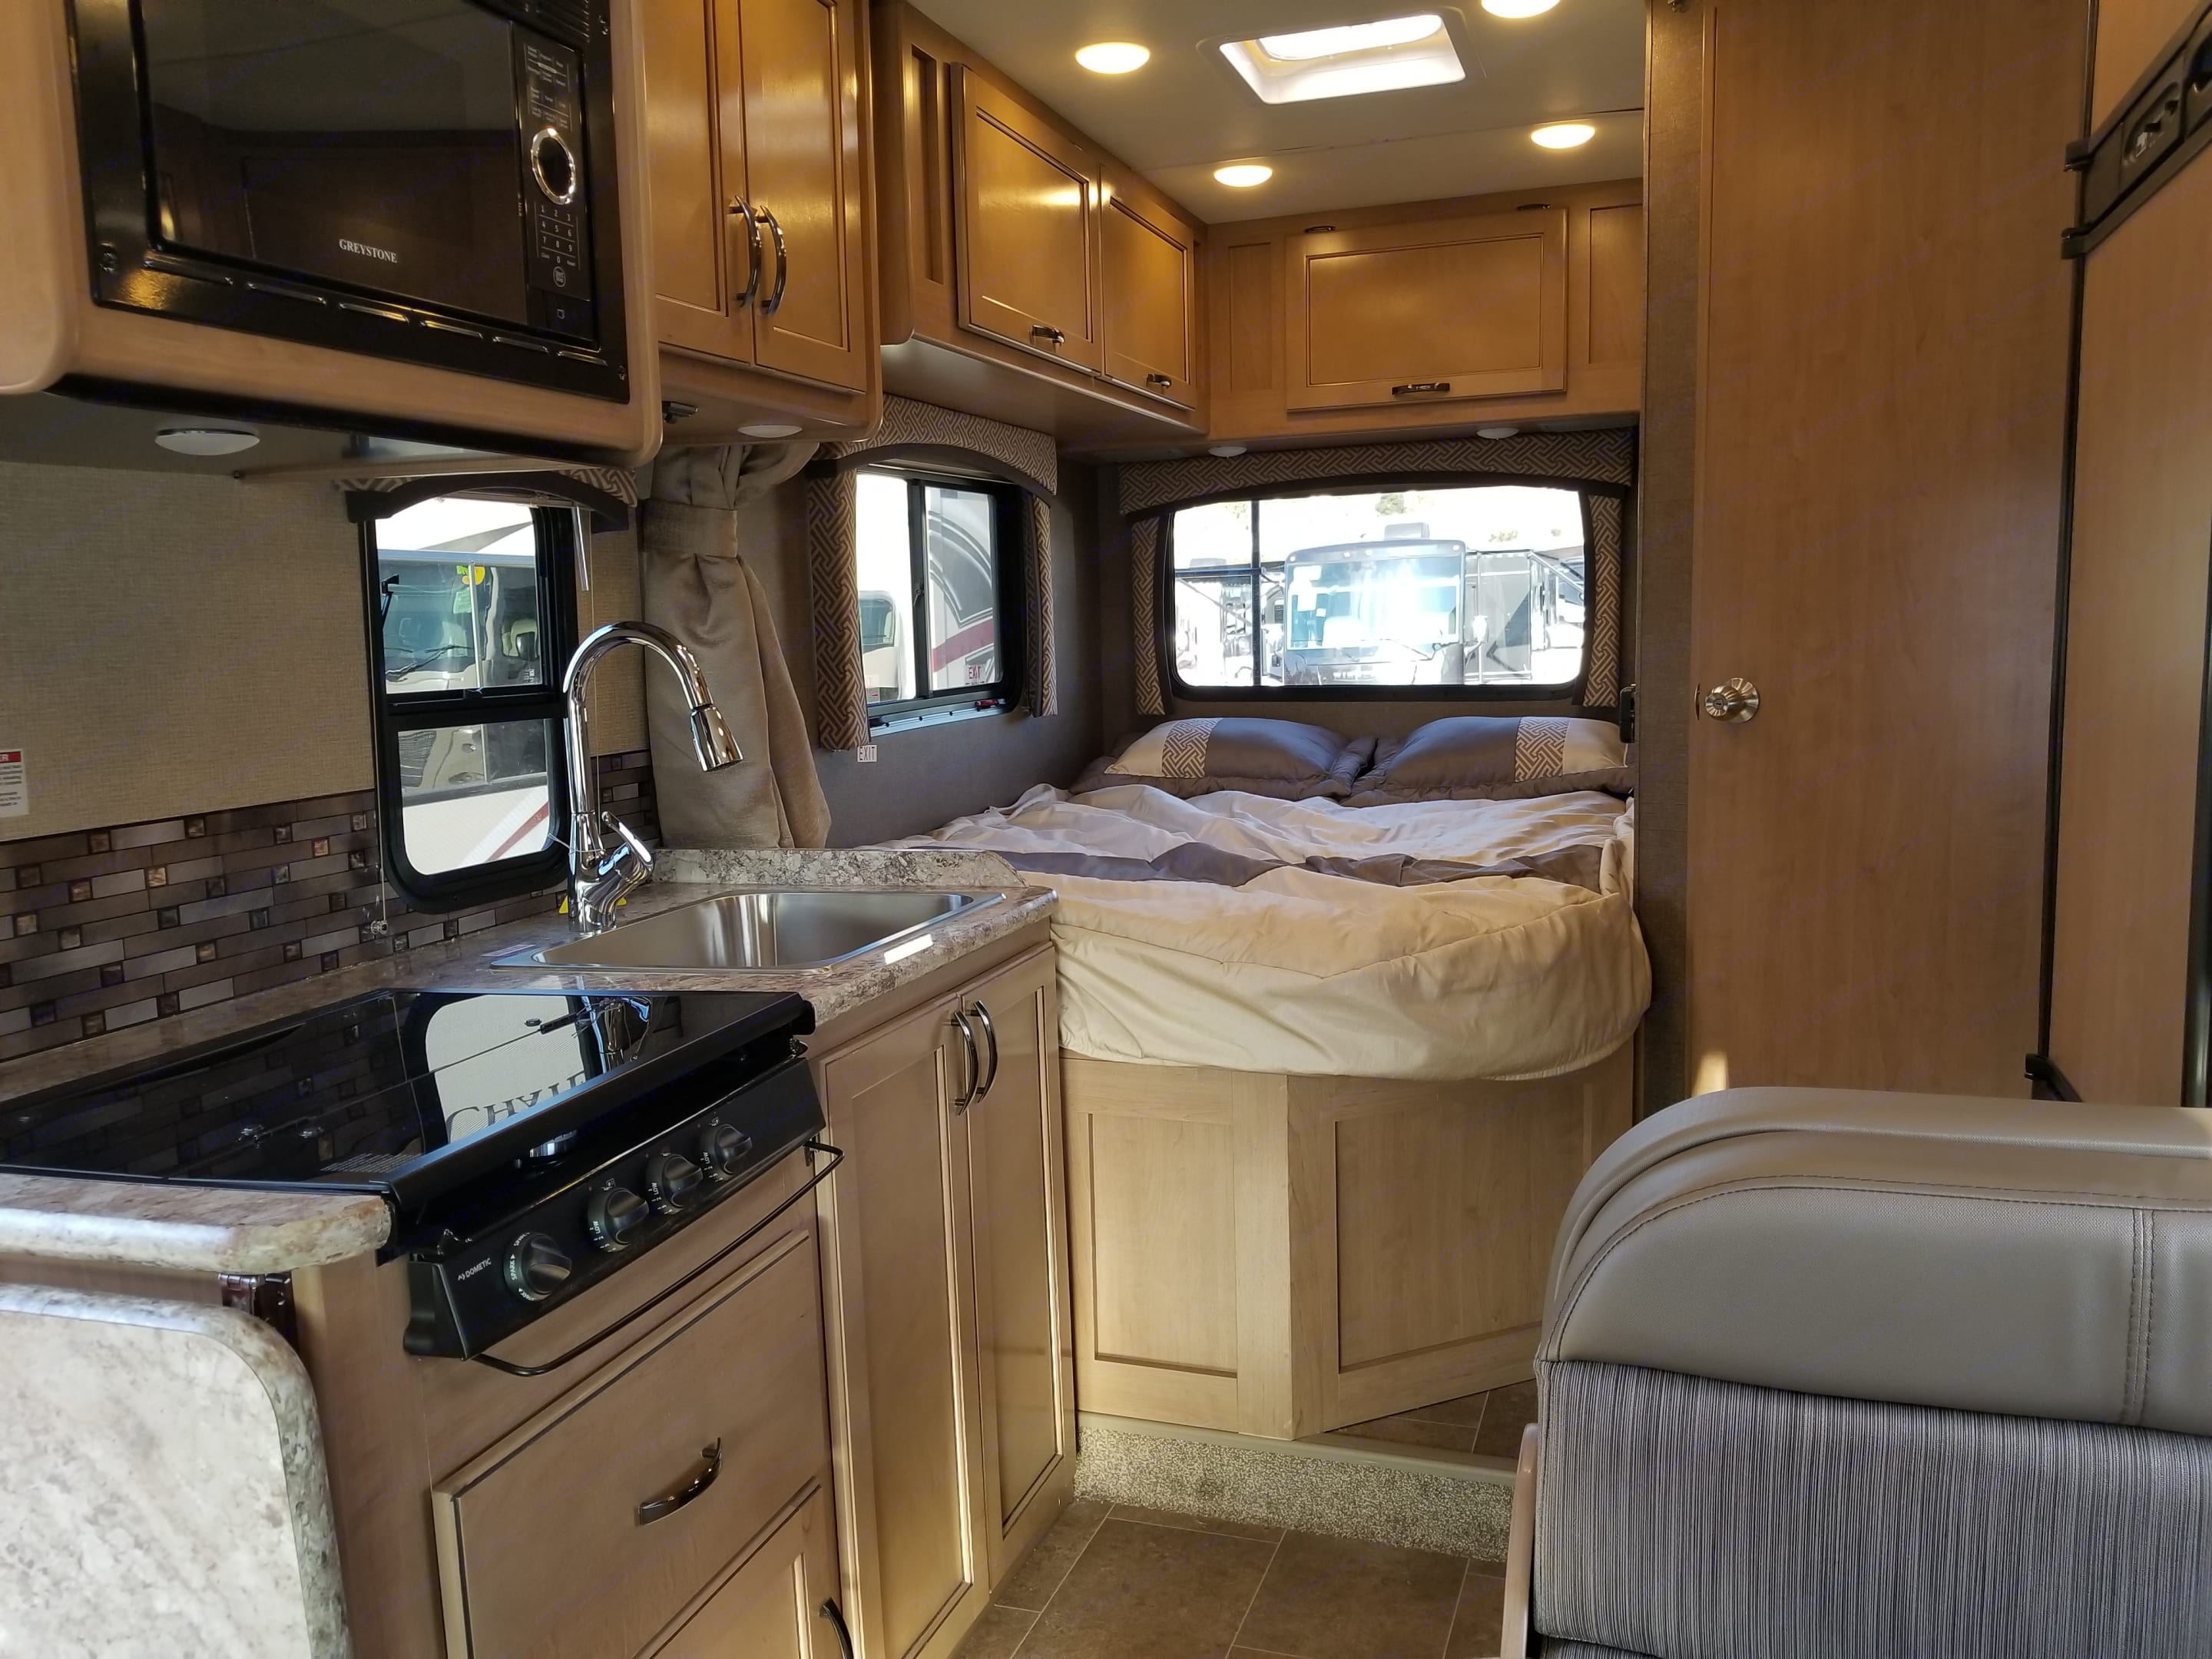 Gas stove, refrigerator, micro-range in stock. . Thor Motor Coach Chateau 2018